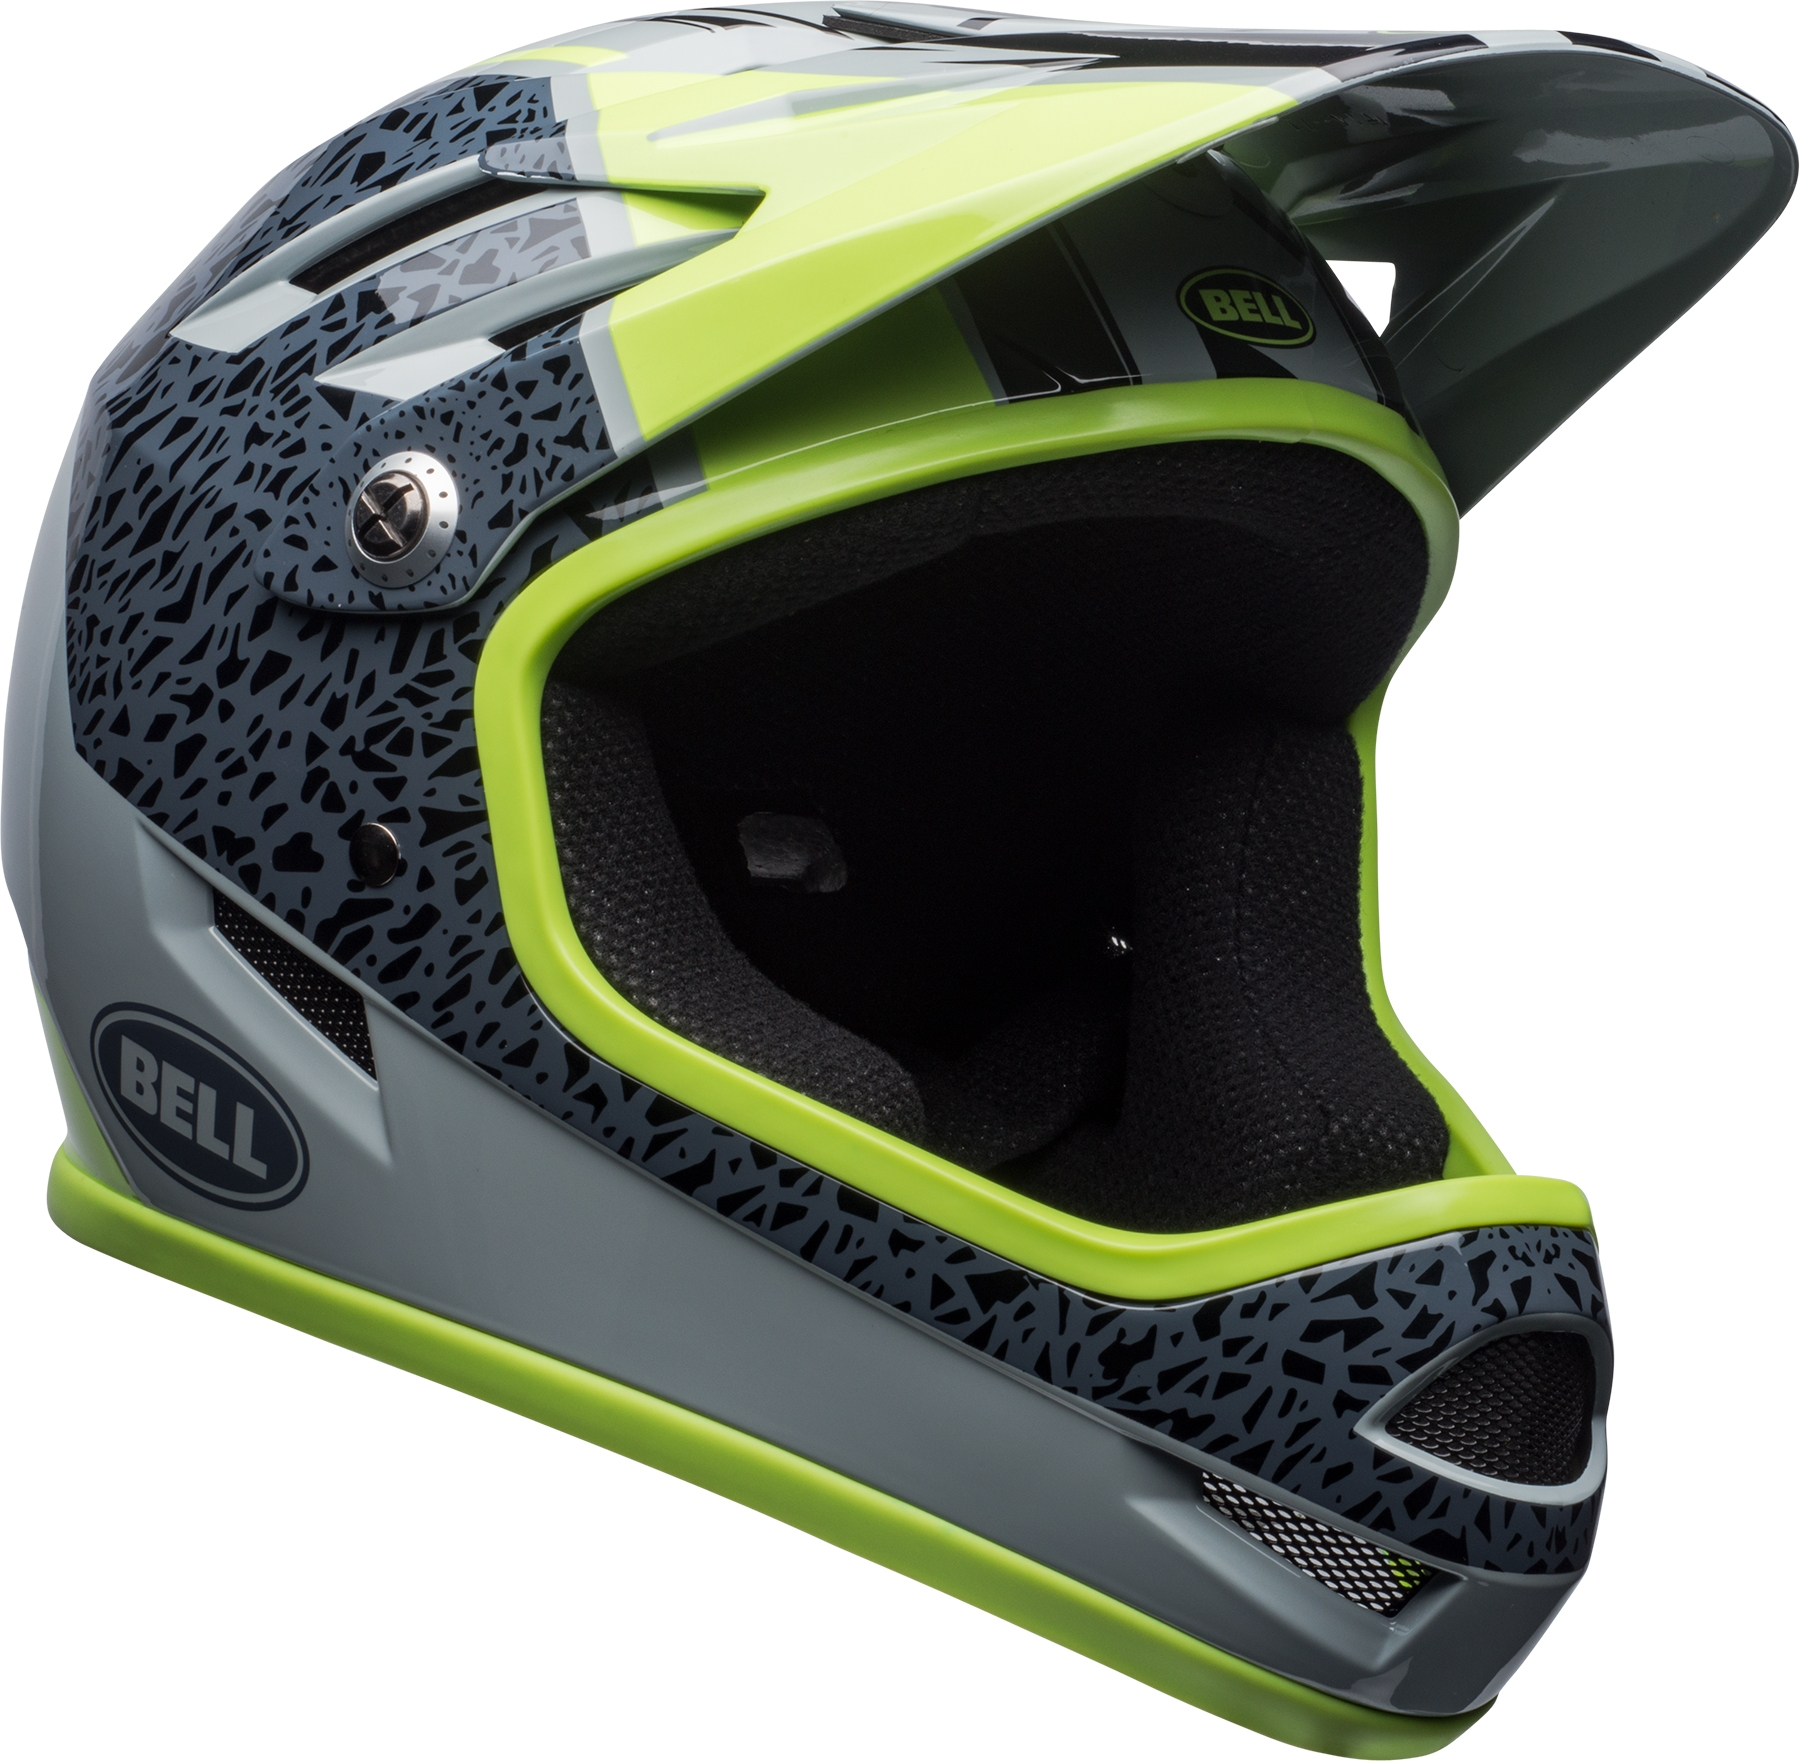 Casque Bell SANCTION Gris Smoke/Pear - S / 52-56 cm